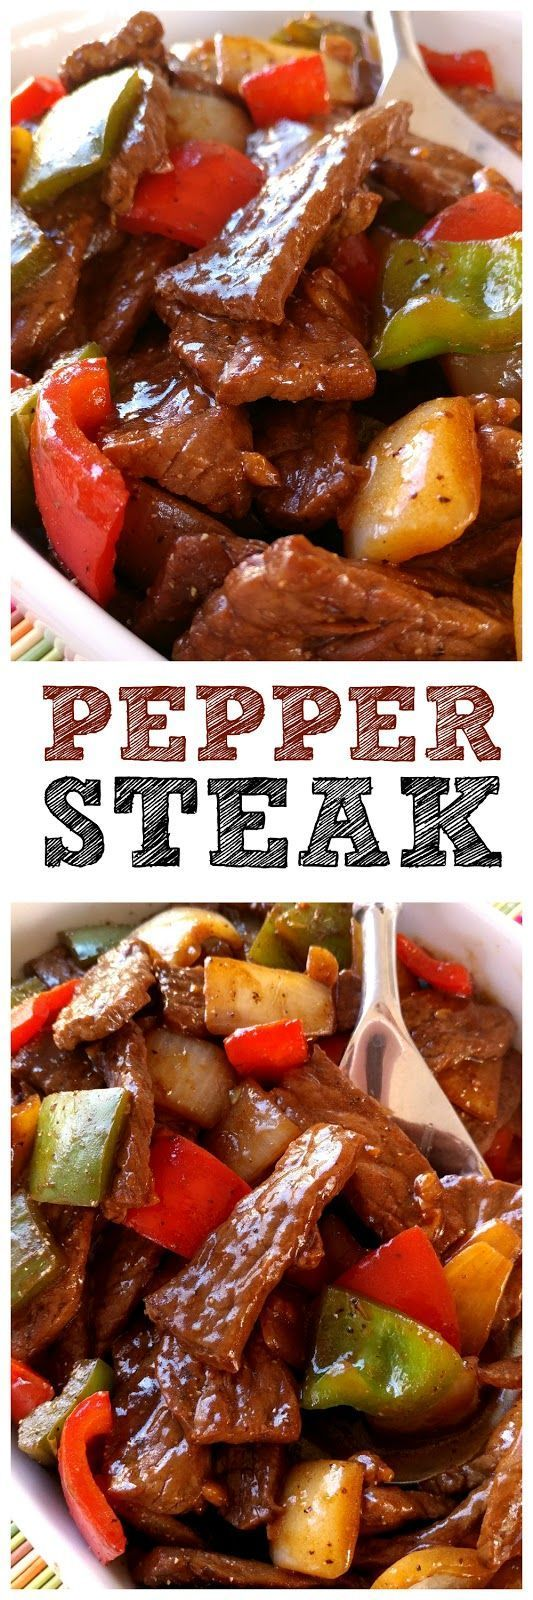 Ingredients:     Pepper Steak:   1.5 lbs. sirloin or bottom round steak   3 tablespoons soy sauce   1 teaspoon black pepper   Vegetable...